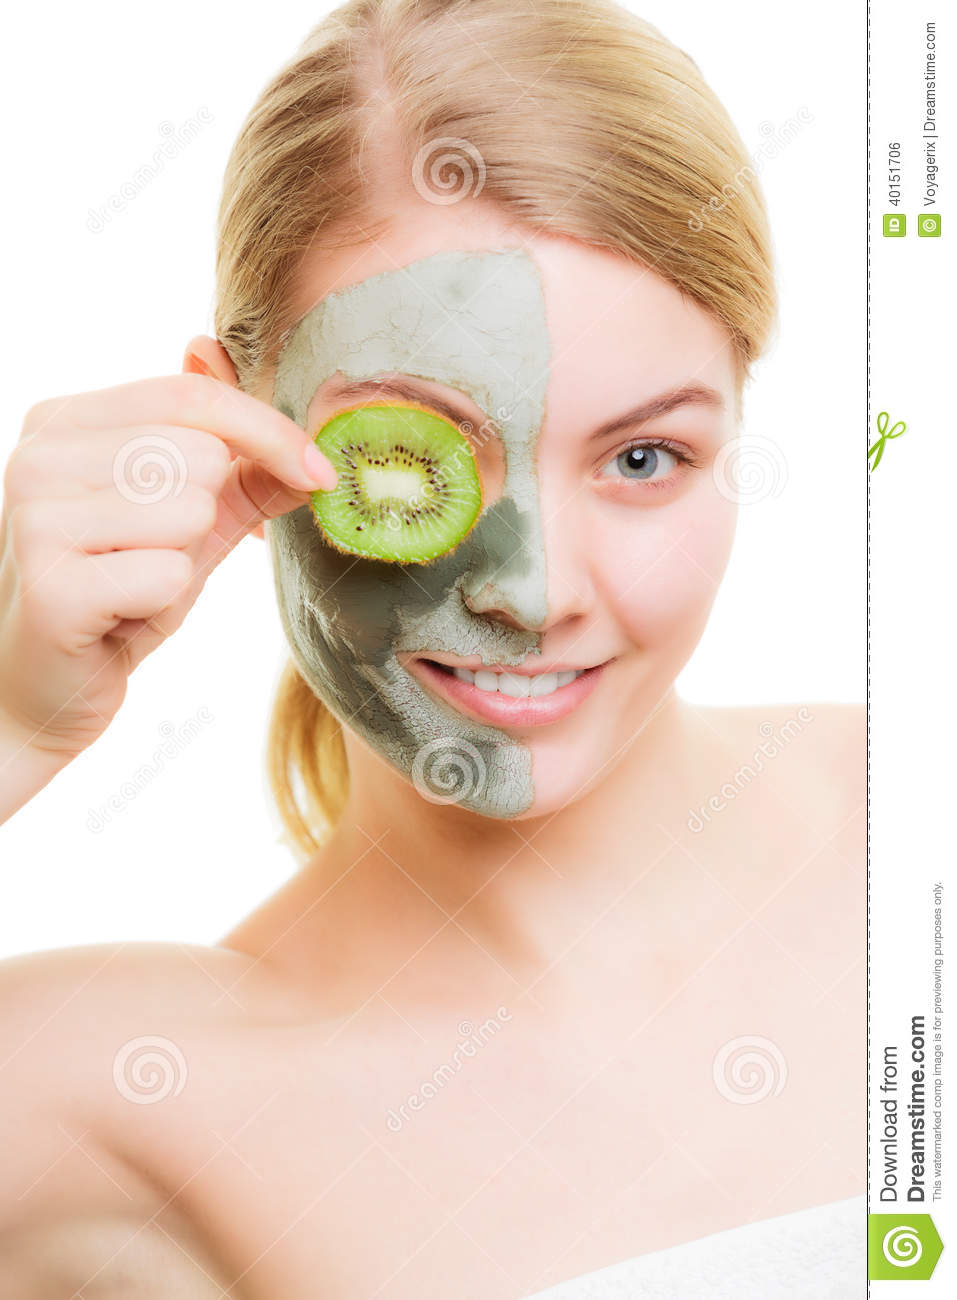 Seems very persistently dry facial skin necessary phrase